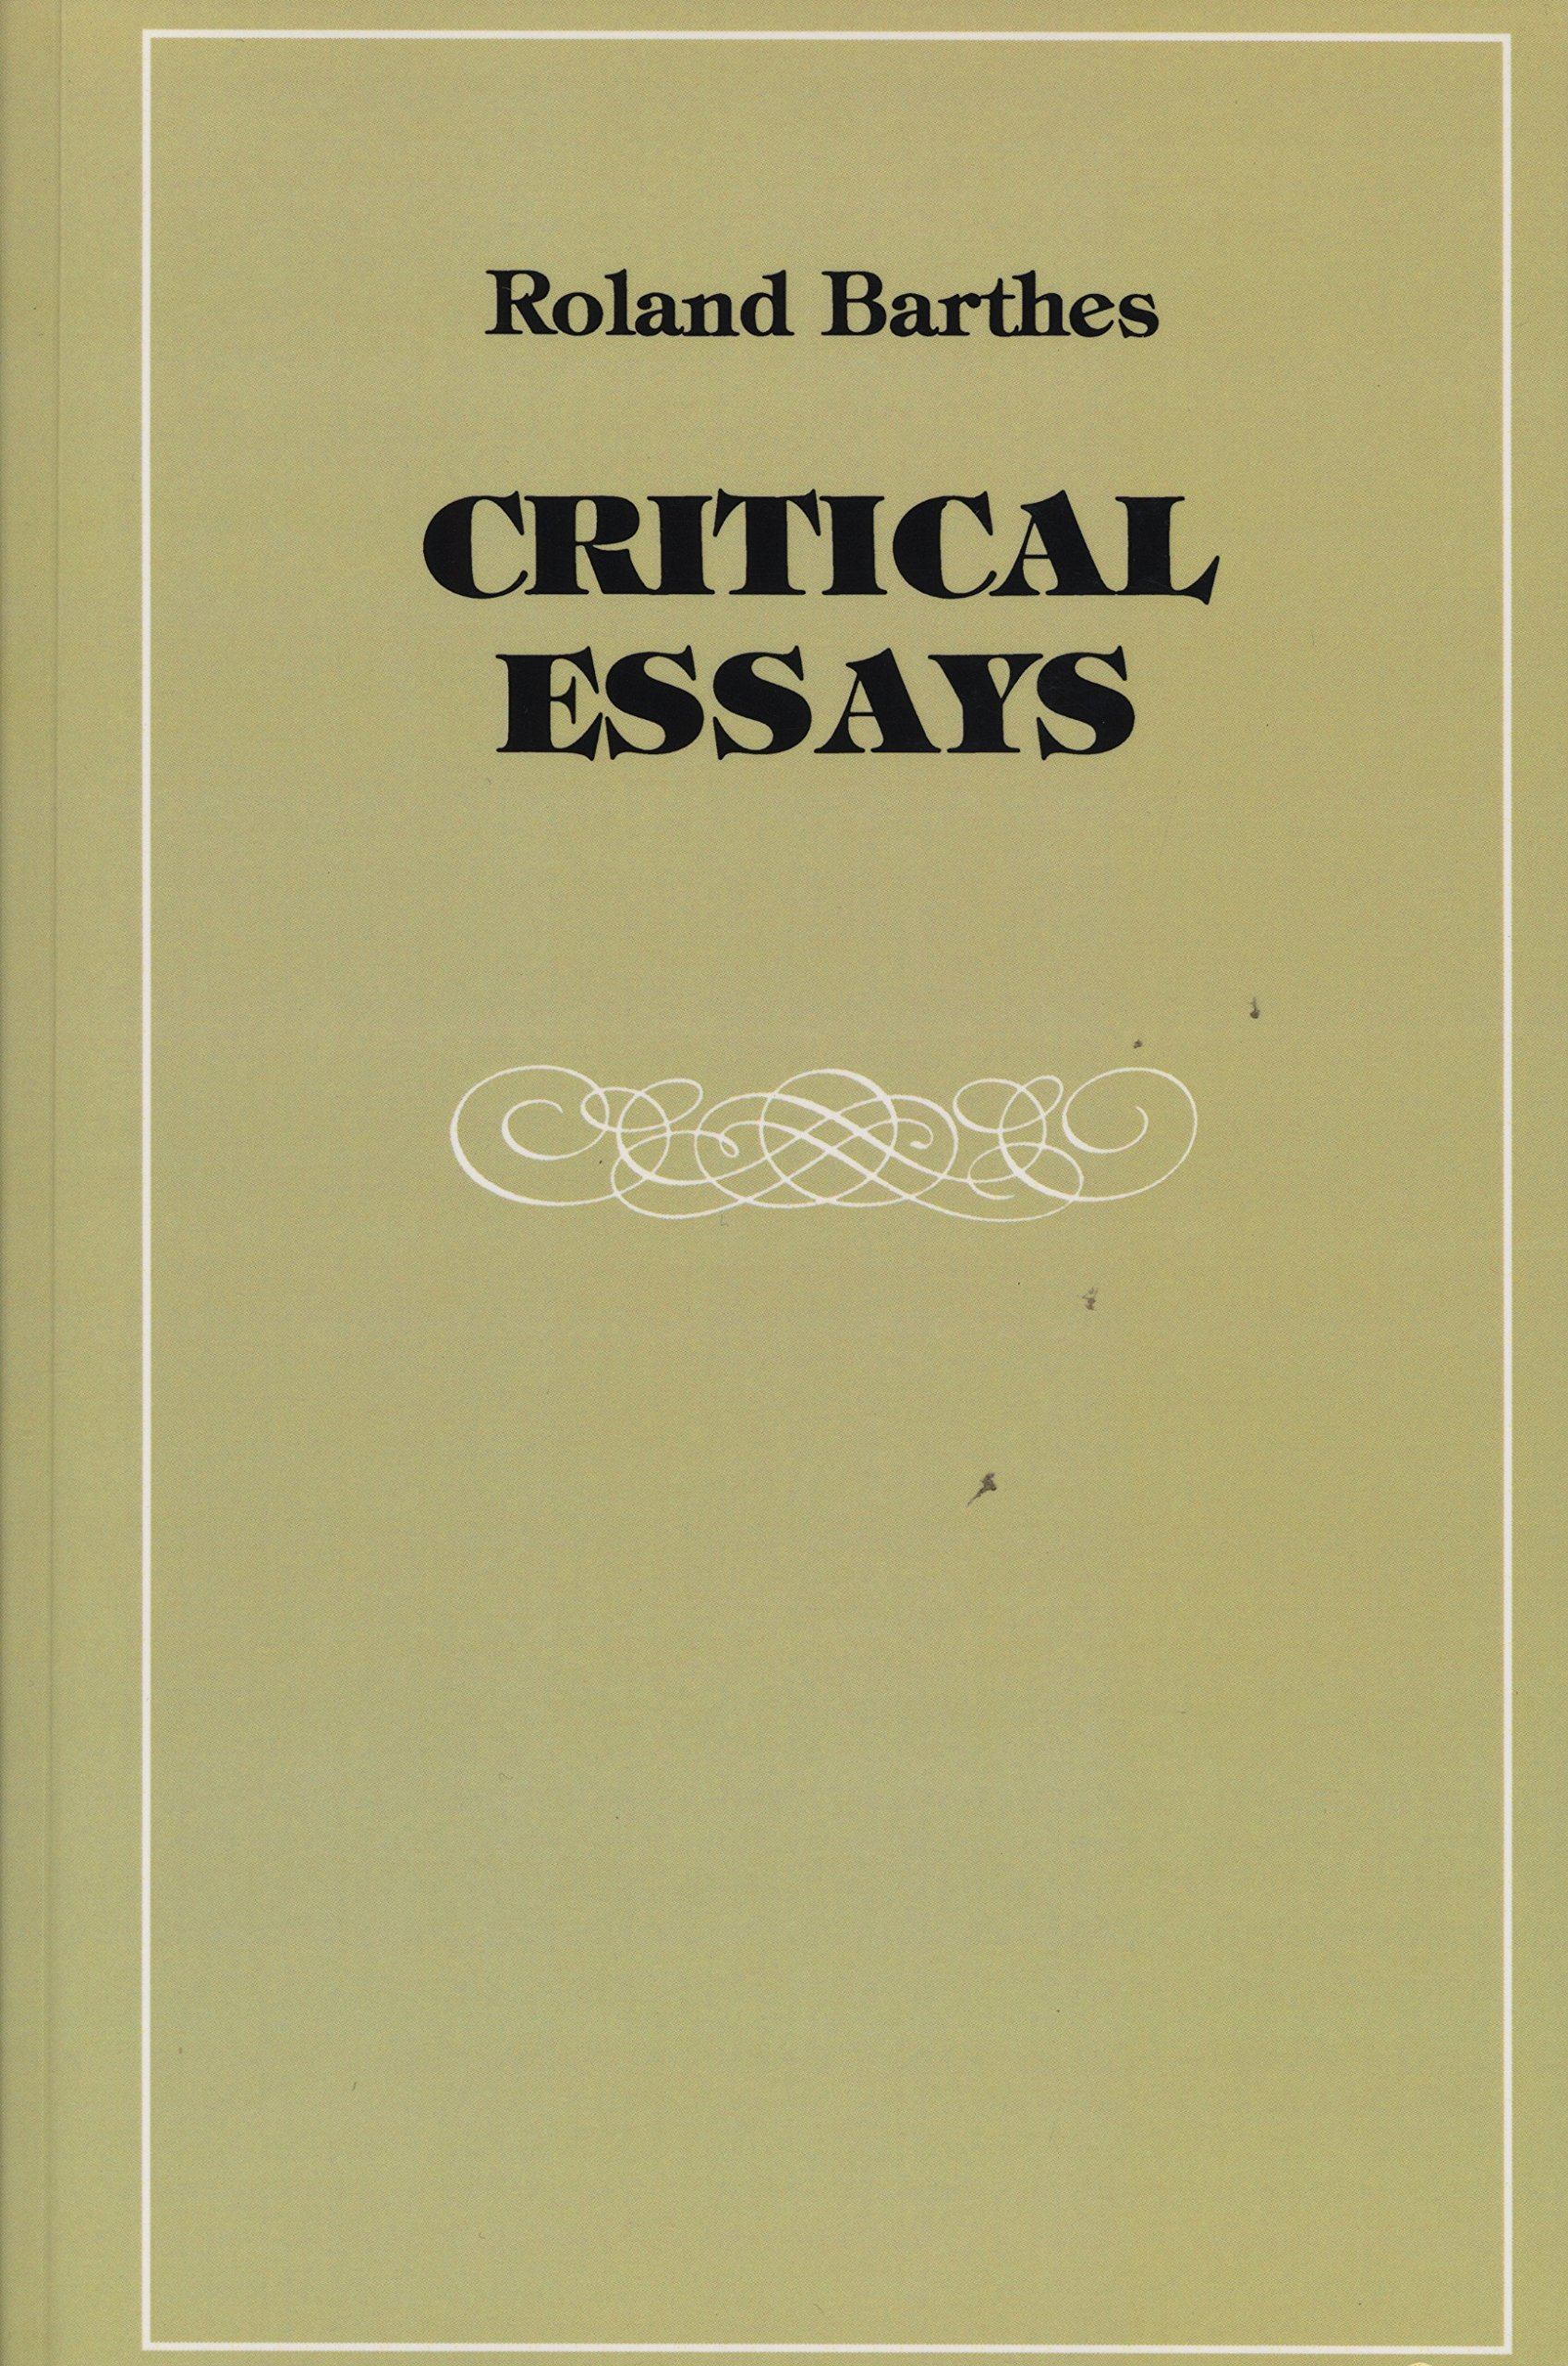 critical essays roland barthes richard howard  critical essays roland barthes richard howard 9780810105898 com books